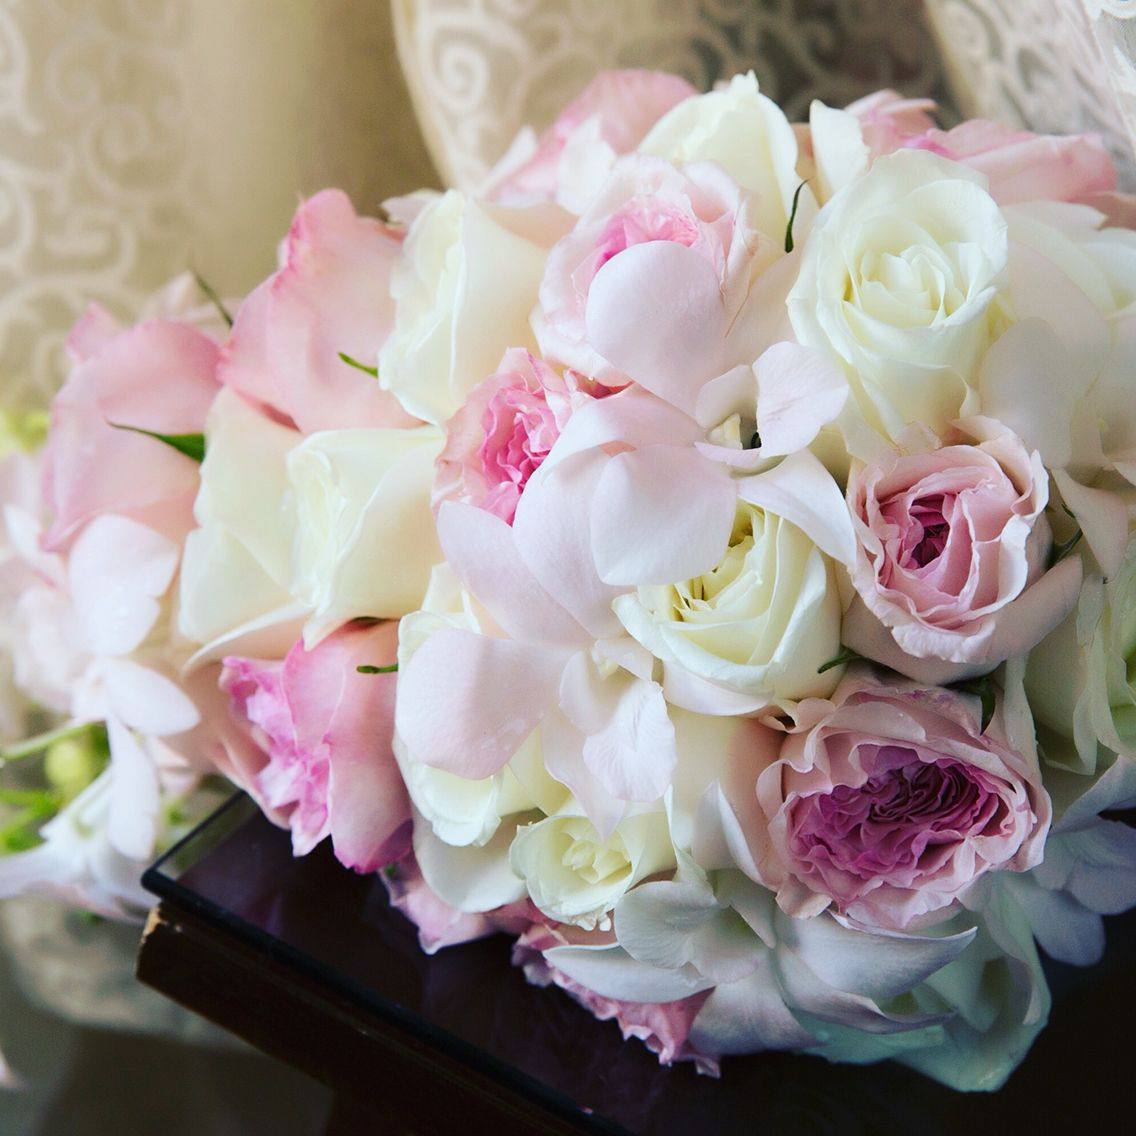 #FunFactFriday Peonies and Garden Roses are a couple of 2016's most desired flowers for social events and parties. Here is bouquet we have created with these lovely flowers! #bocabydesign #bocaratonresort #bocaresort #weddingbouquets #bouquet #floralcenterpieces #peonies #gardenroses #socialevents